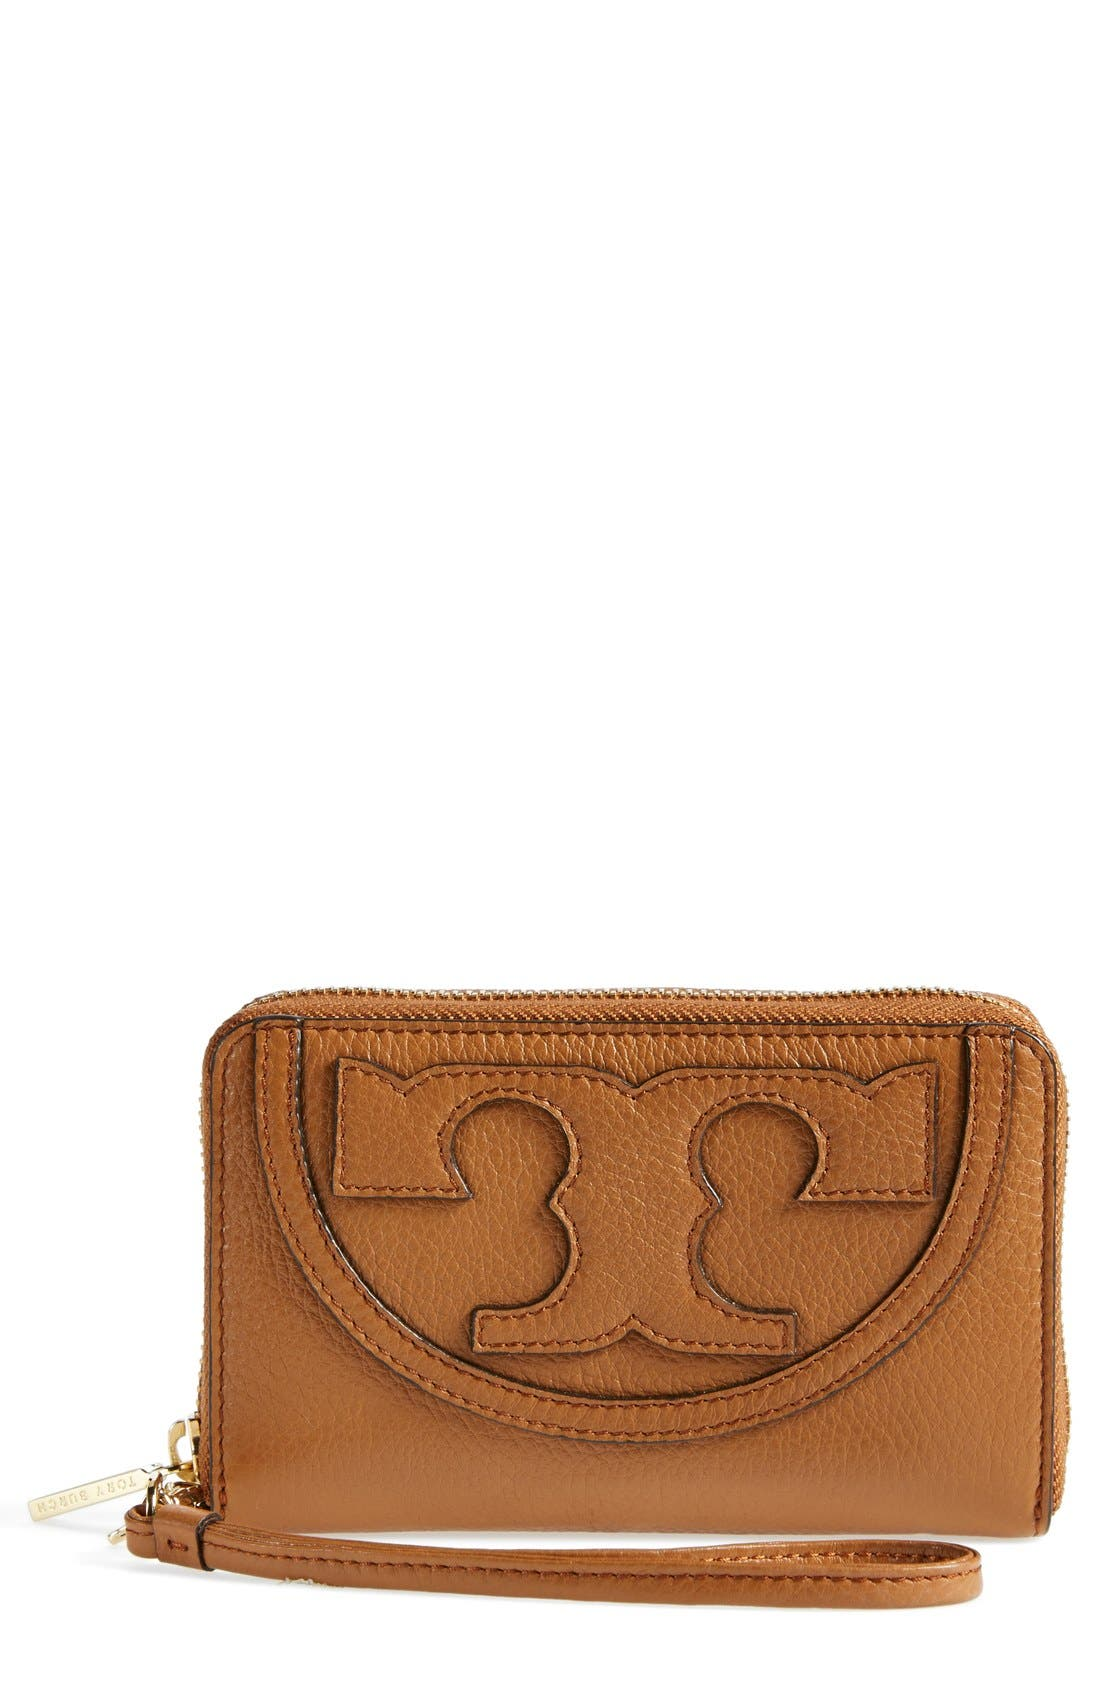 Main Image - Tory Burch 'All T' Leather Phone Wallet